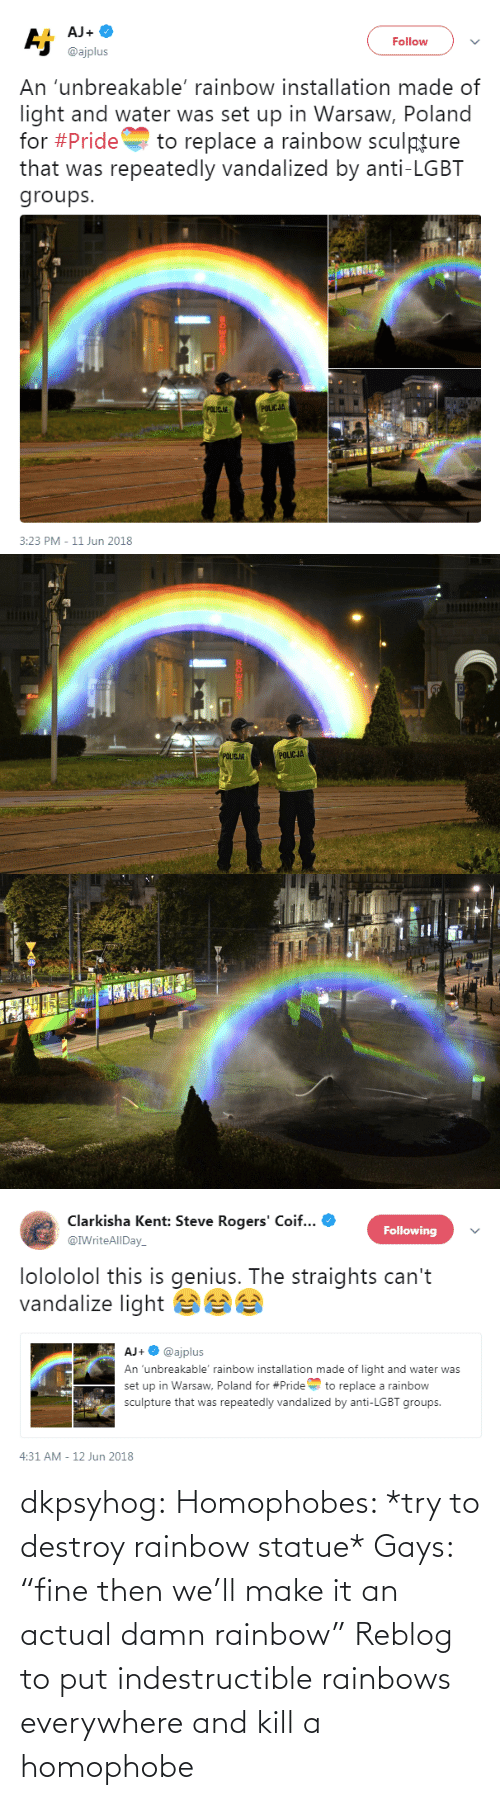 "gays: dkpsyhog: Homophobes: *try to destroy rainbow statue* Gays: ""fine then we'll make it an actual damn rainbow"" Reblog to put indestructible rainbows everywhere and kill a homophobe"